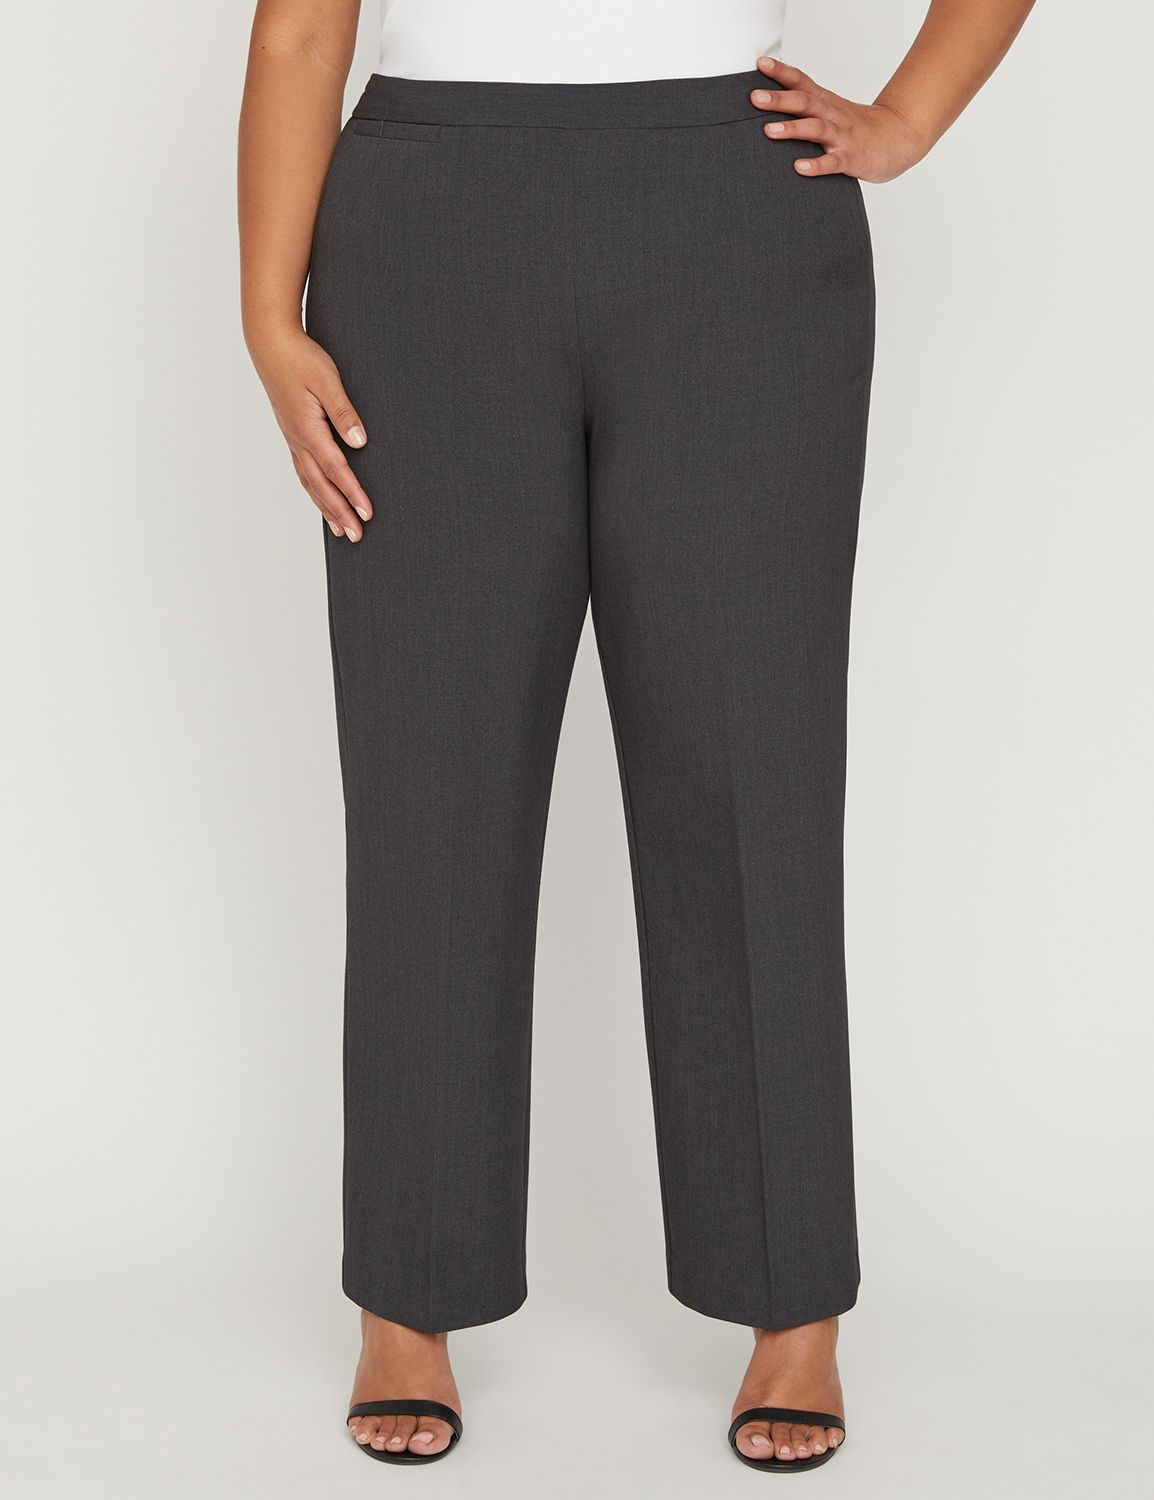 Heathered Refined Pant Heathered Refined Fit Pant MP-300044113